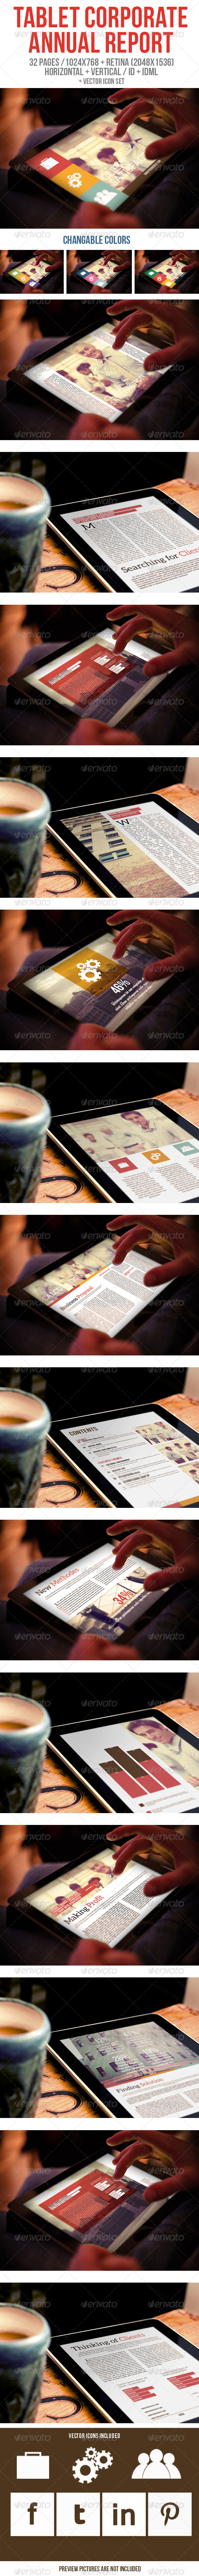 GraphicRiver Tablet Corporate Annual Report 6242597